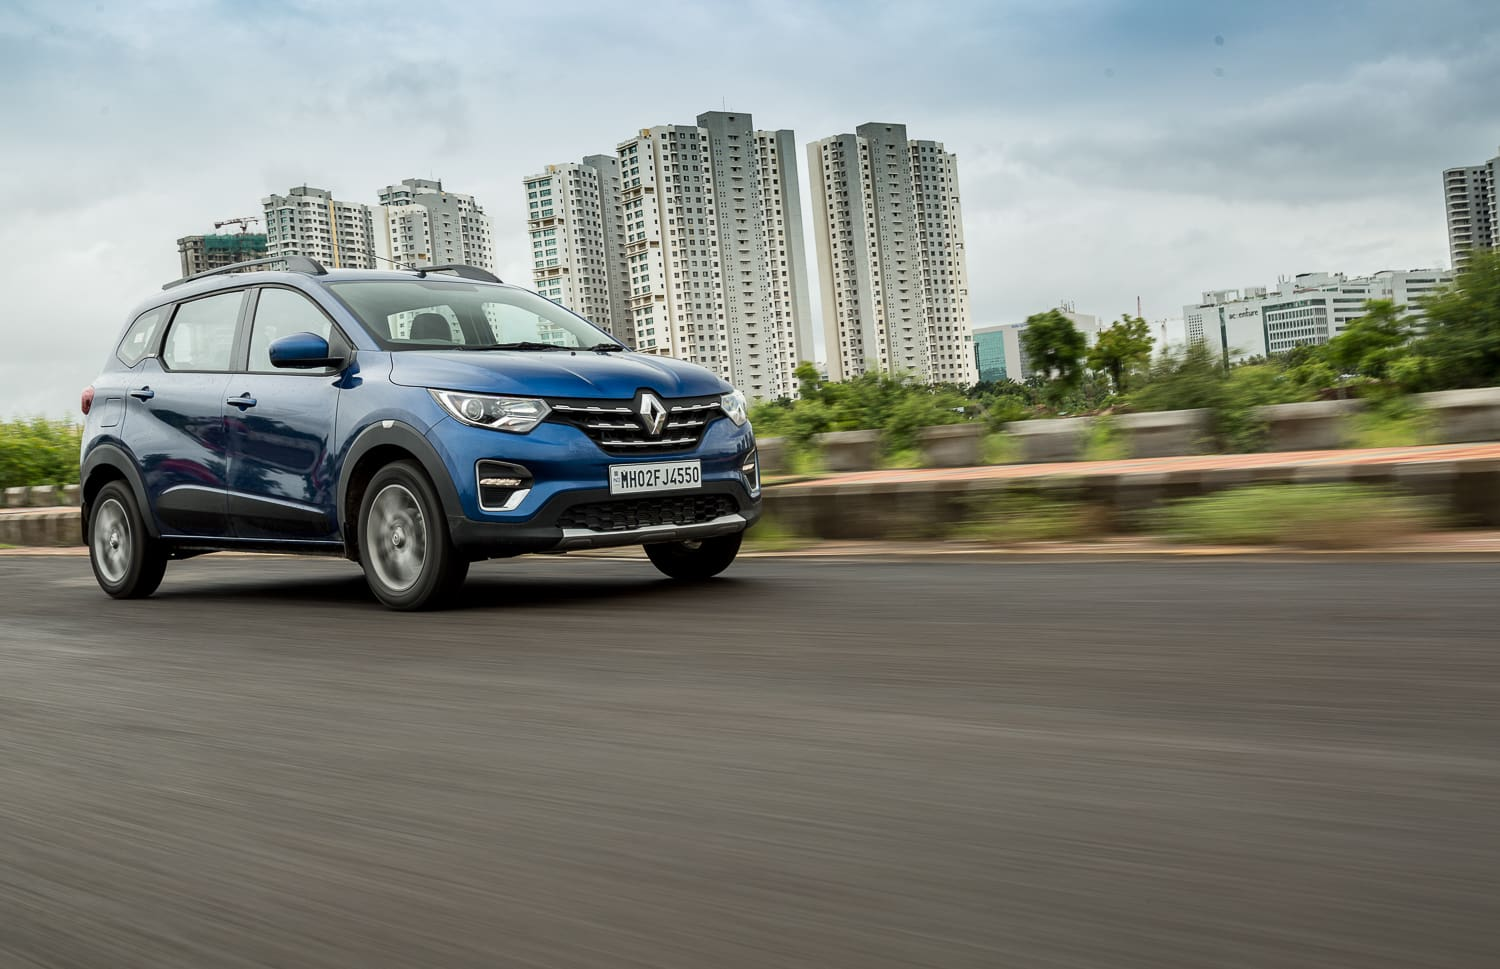 Renault Triber: 5 Key Takeaways From The Long Term Review